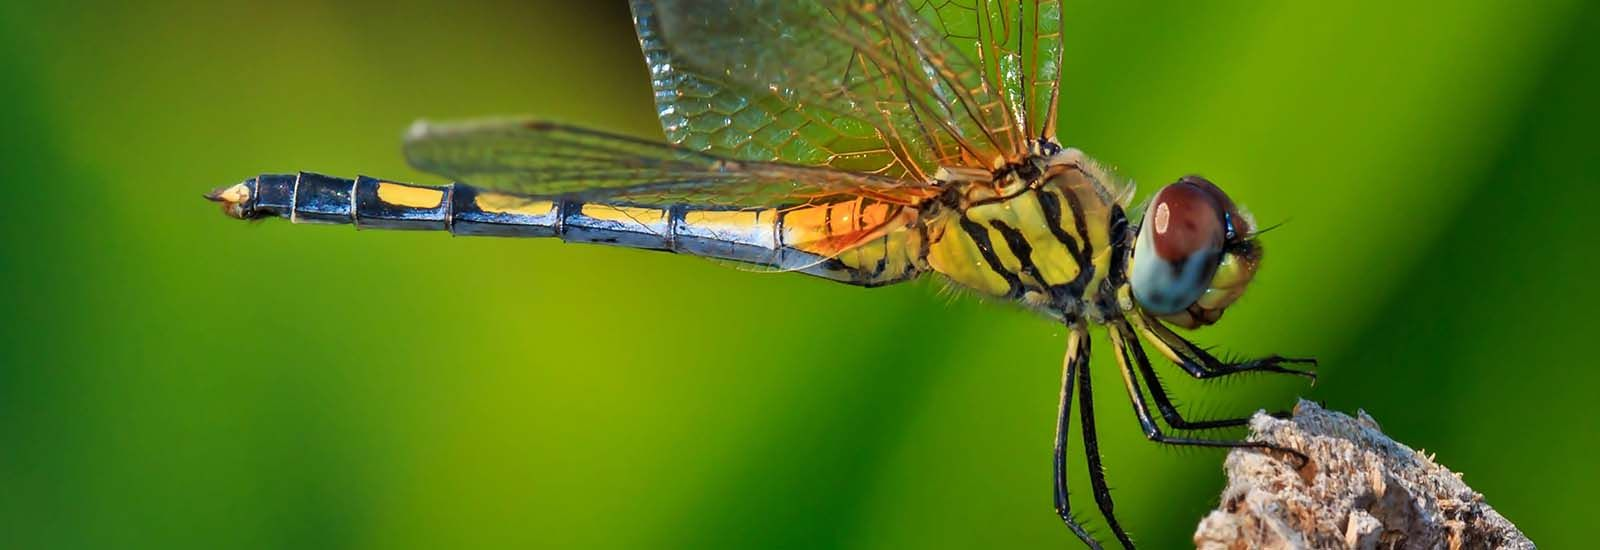 Macro picture of dragonfly in nature